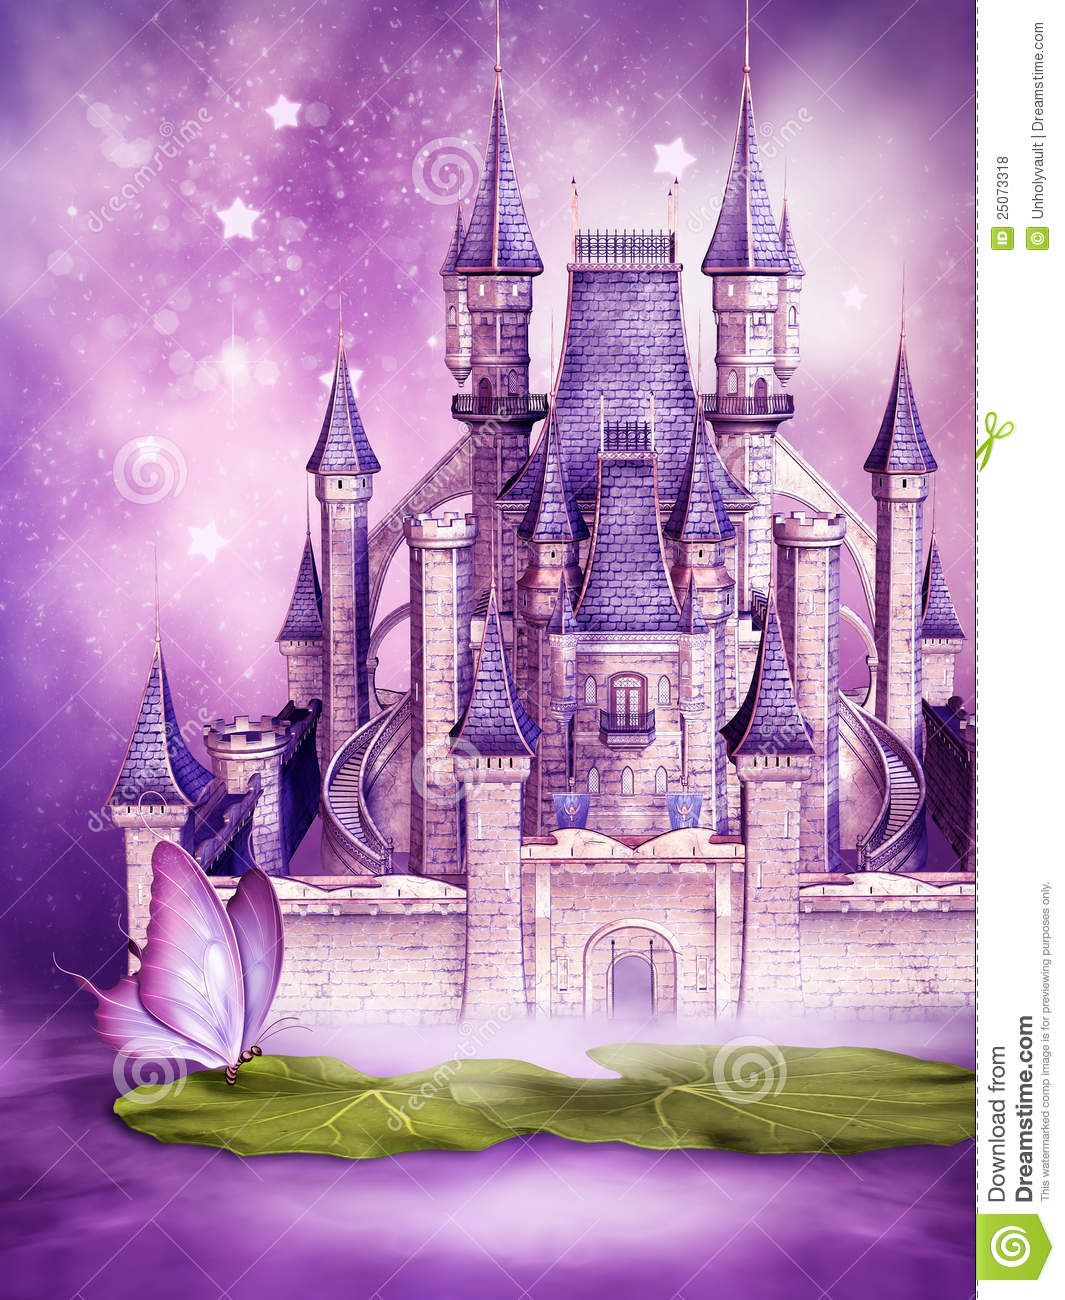 fairy castles | fairytale castle on water | little girls room